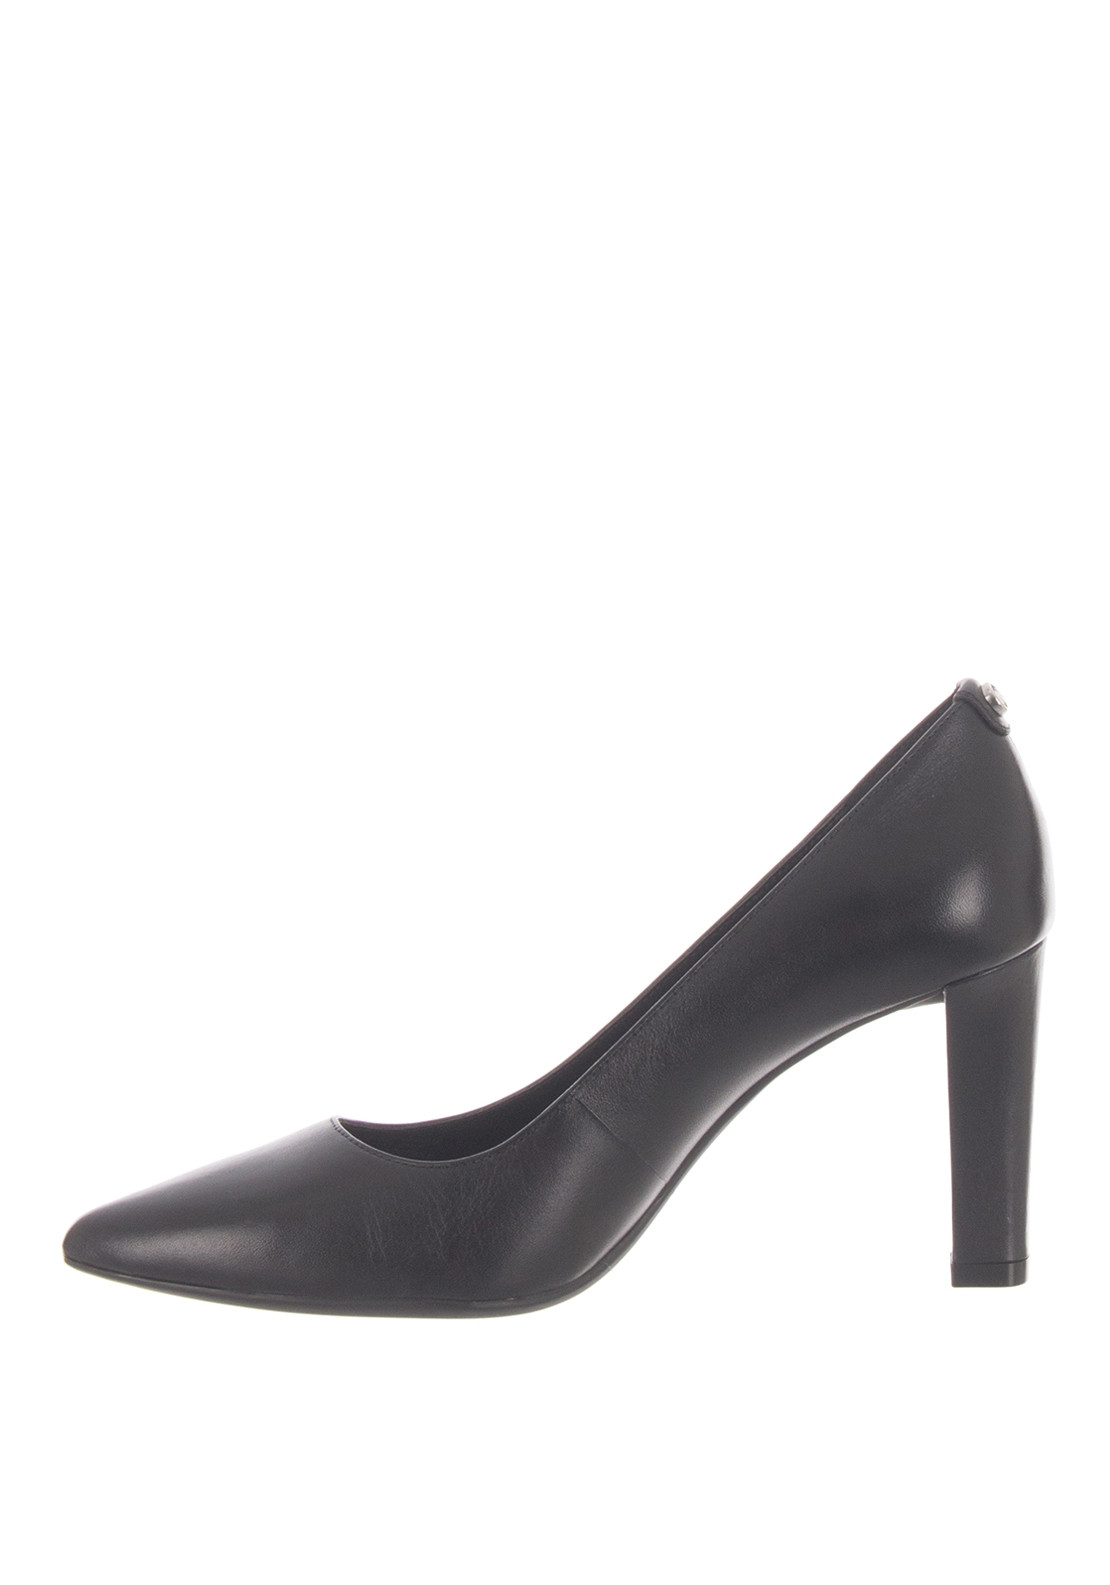 075cf1491 MICHAEL Michael Kors Abbi Court Shoes, Black. Be the first to review this  product